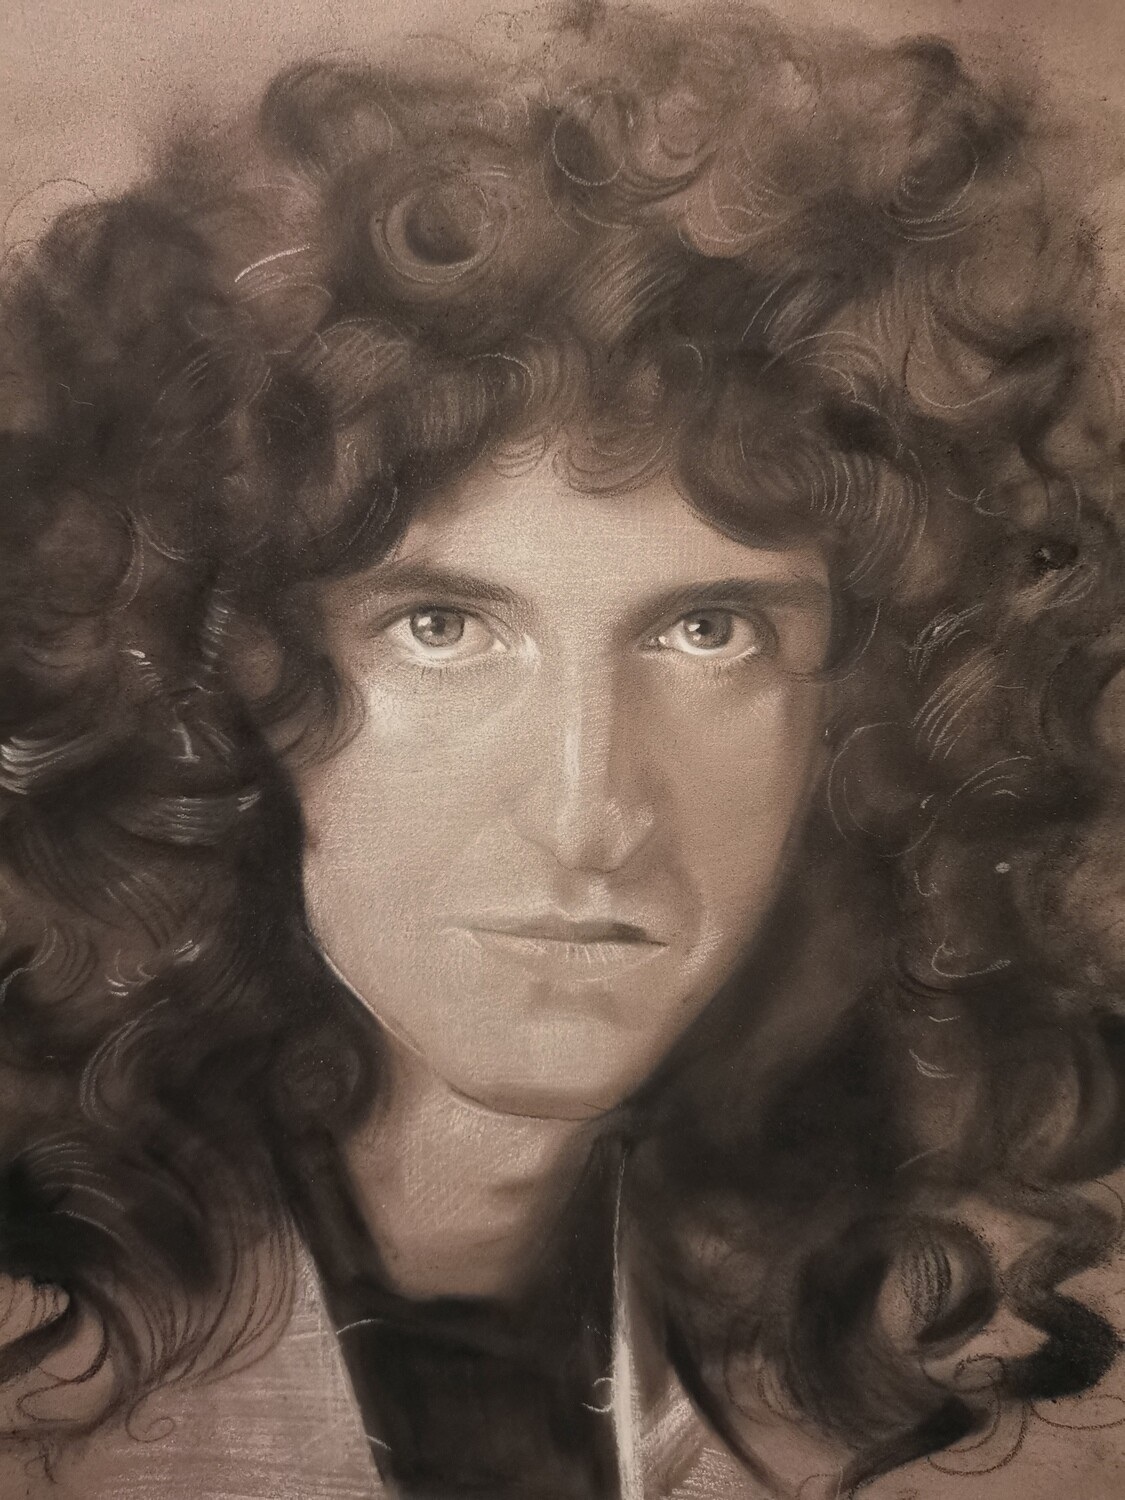 The portrait of Brian May